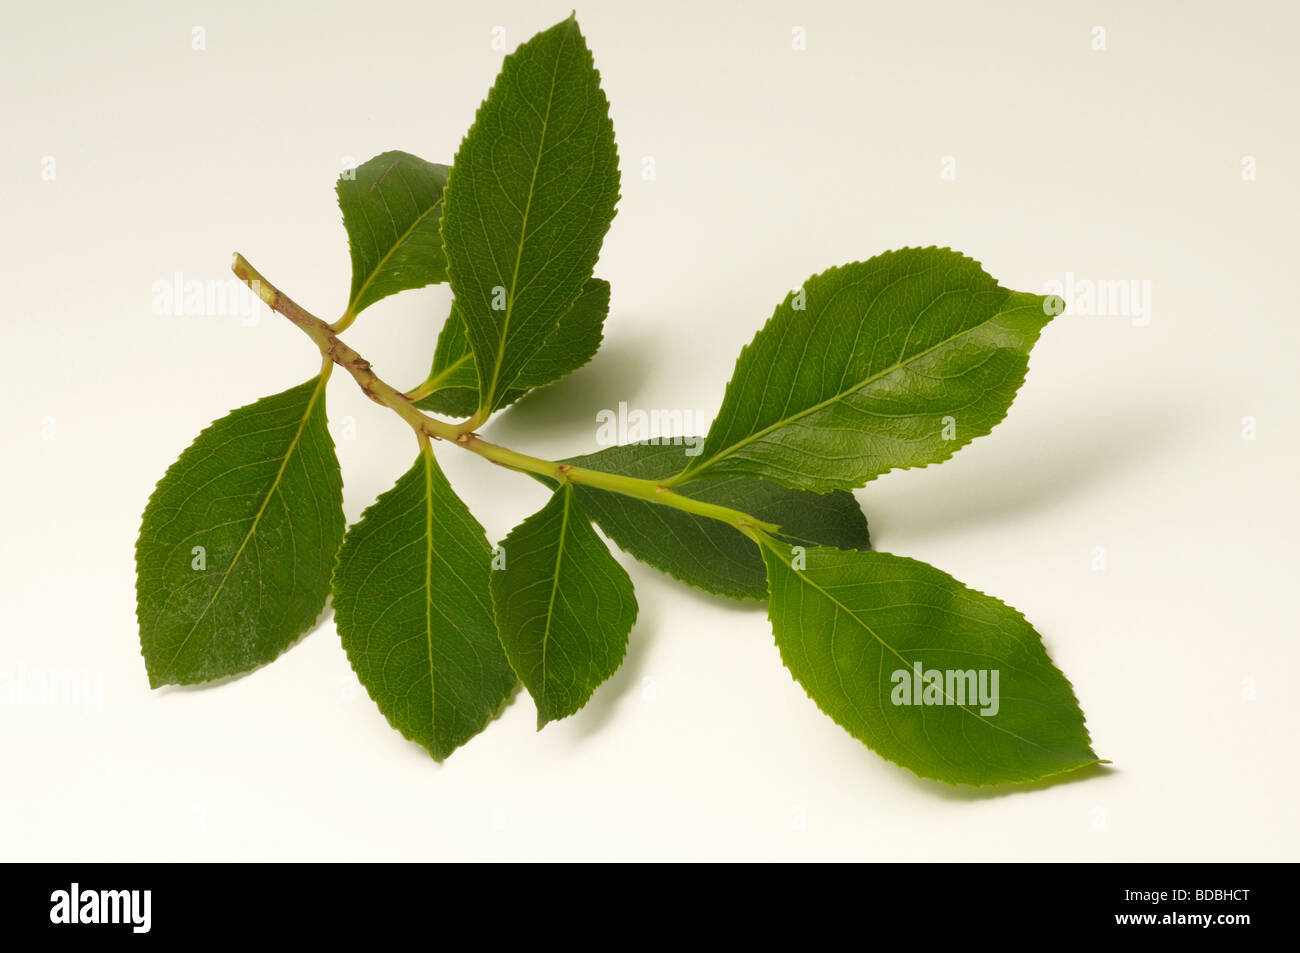 Khat (Catha edulis), twig, studio picture - Stock Image